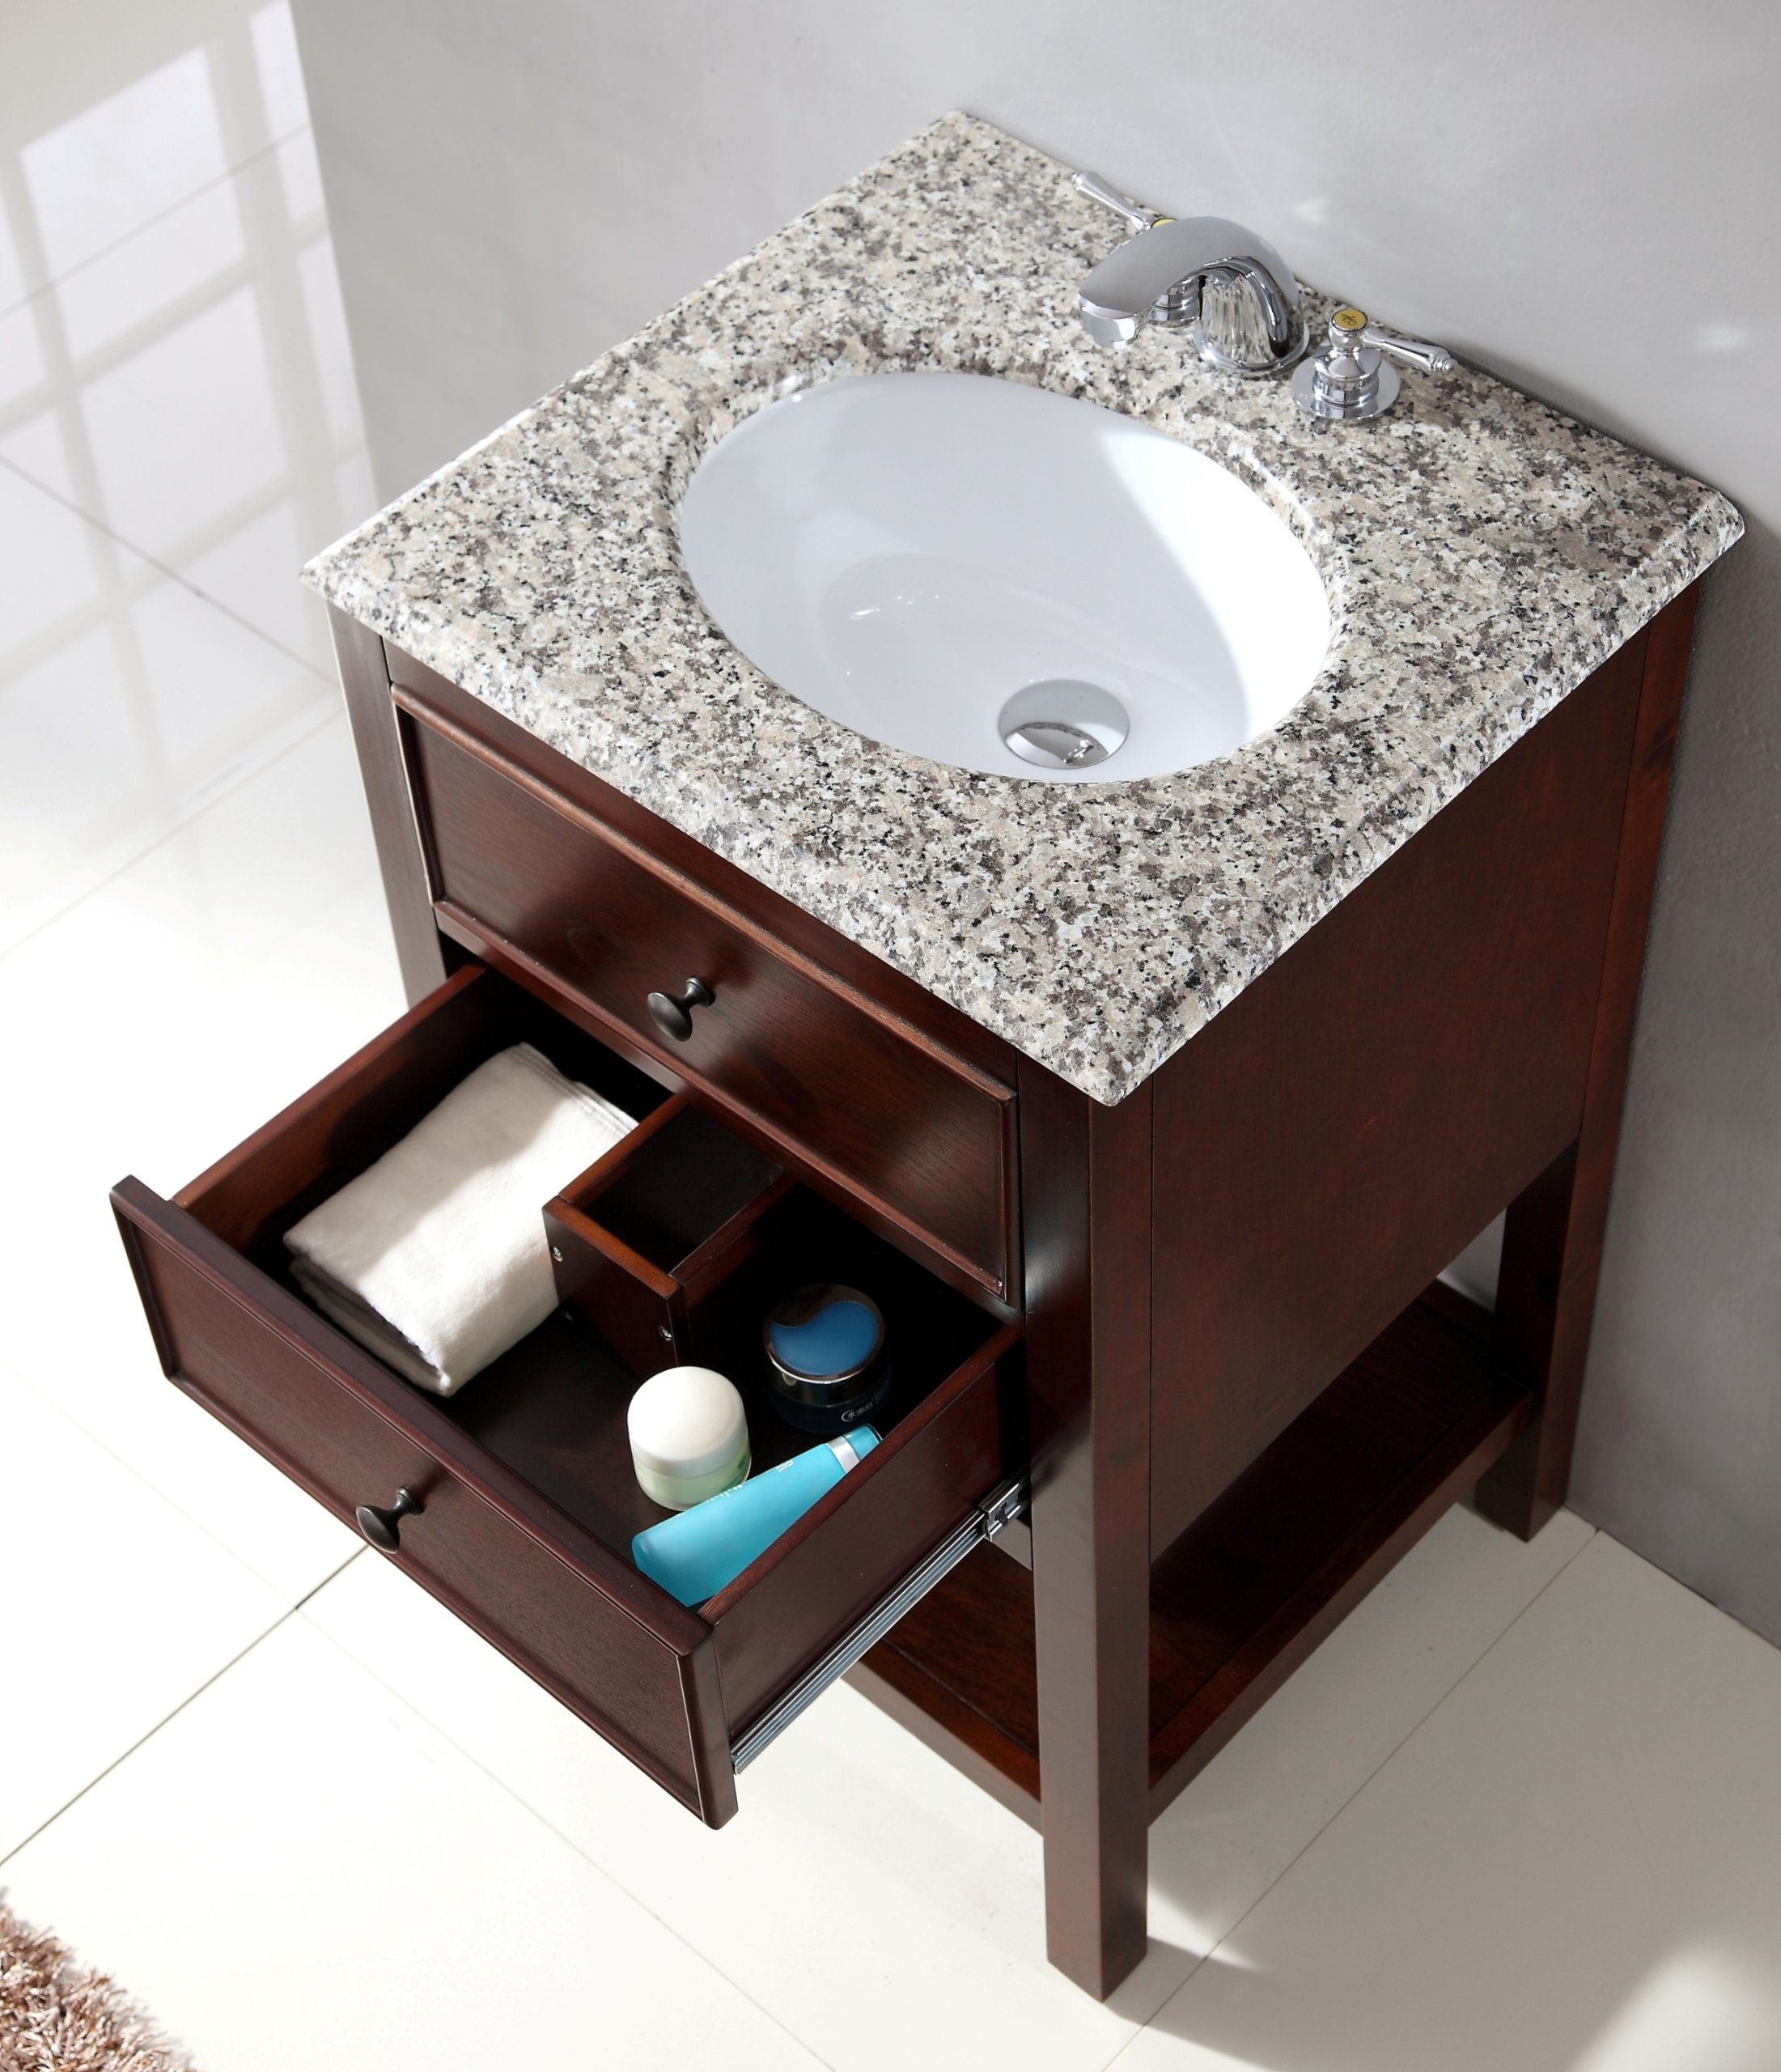 "Simpli Home NL-HHV022H-20-2A Burnaby 20 inch Contemporary Bath Vanity in Walnut Brown  with Dappled Grey Granite Top - Single sink bathroom vanity with one functional drawer and one open bottom shelf, hardwood frame and legs Vanity color: Walnut Brown with antique nickel round knobs Overall Vanity Size with Top: 21"" w x 19"" d x 34.5"" h; Top weight: 27 lbs., Top edge thickness: 11/16"" - bathroom-vanities, bathroom-fixtures-hardware, bathroom - 915zkmk6AfL -"